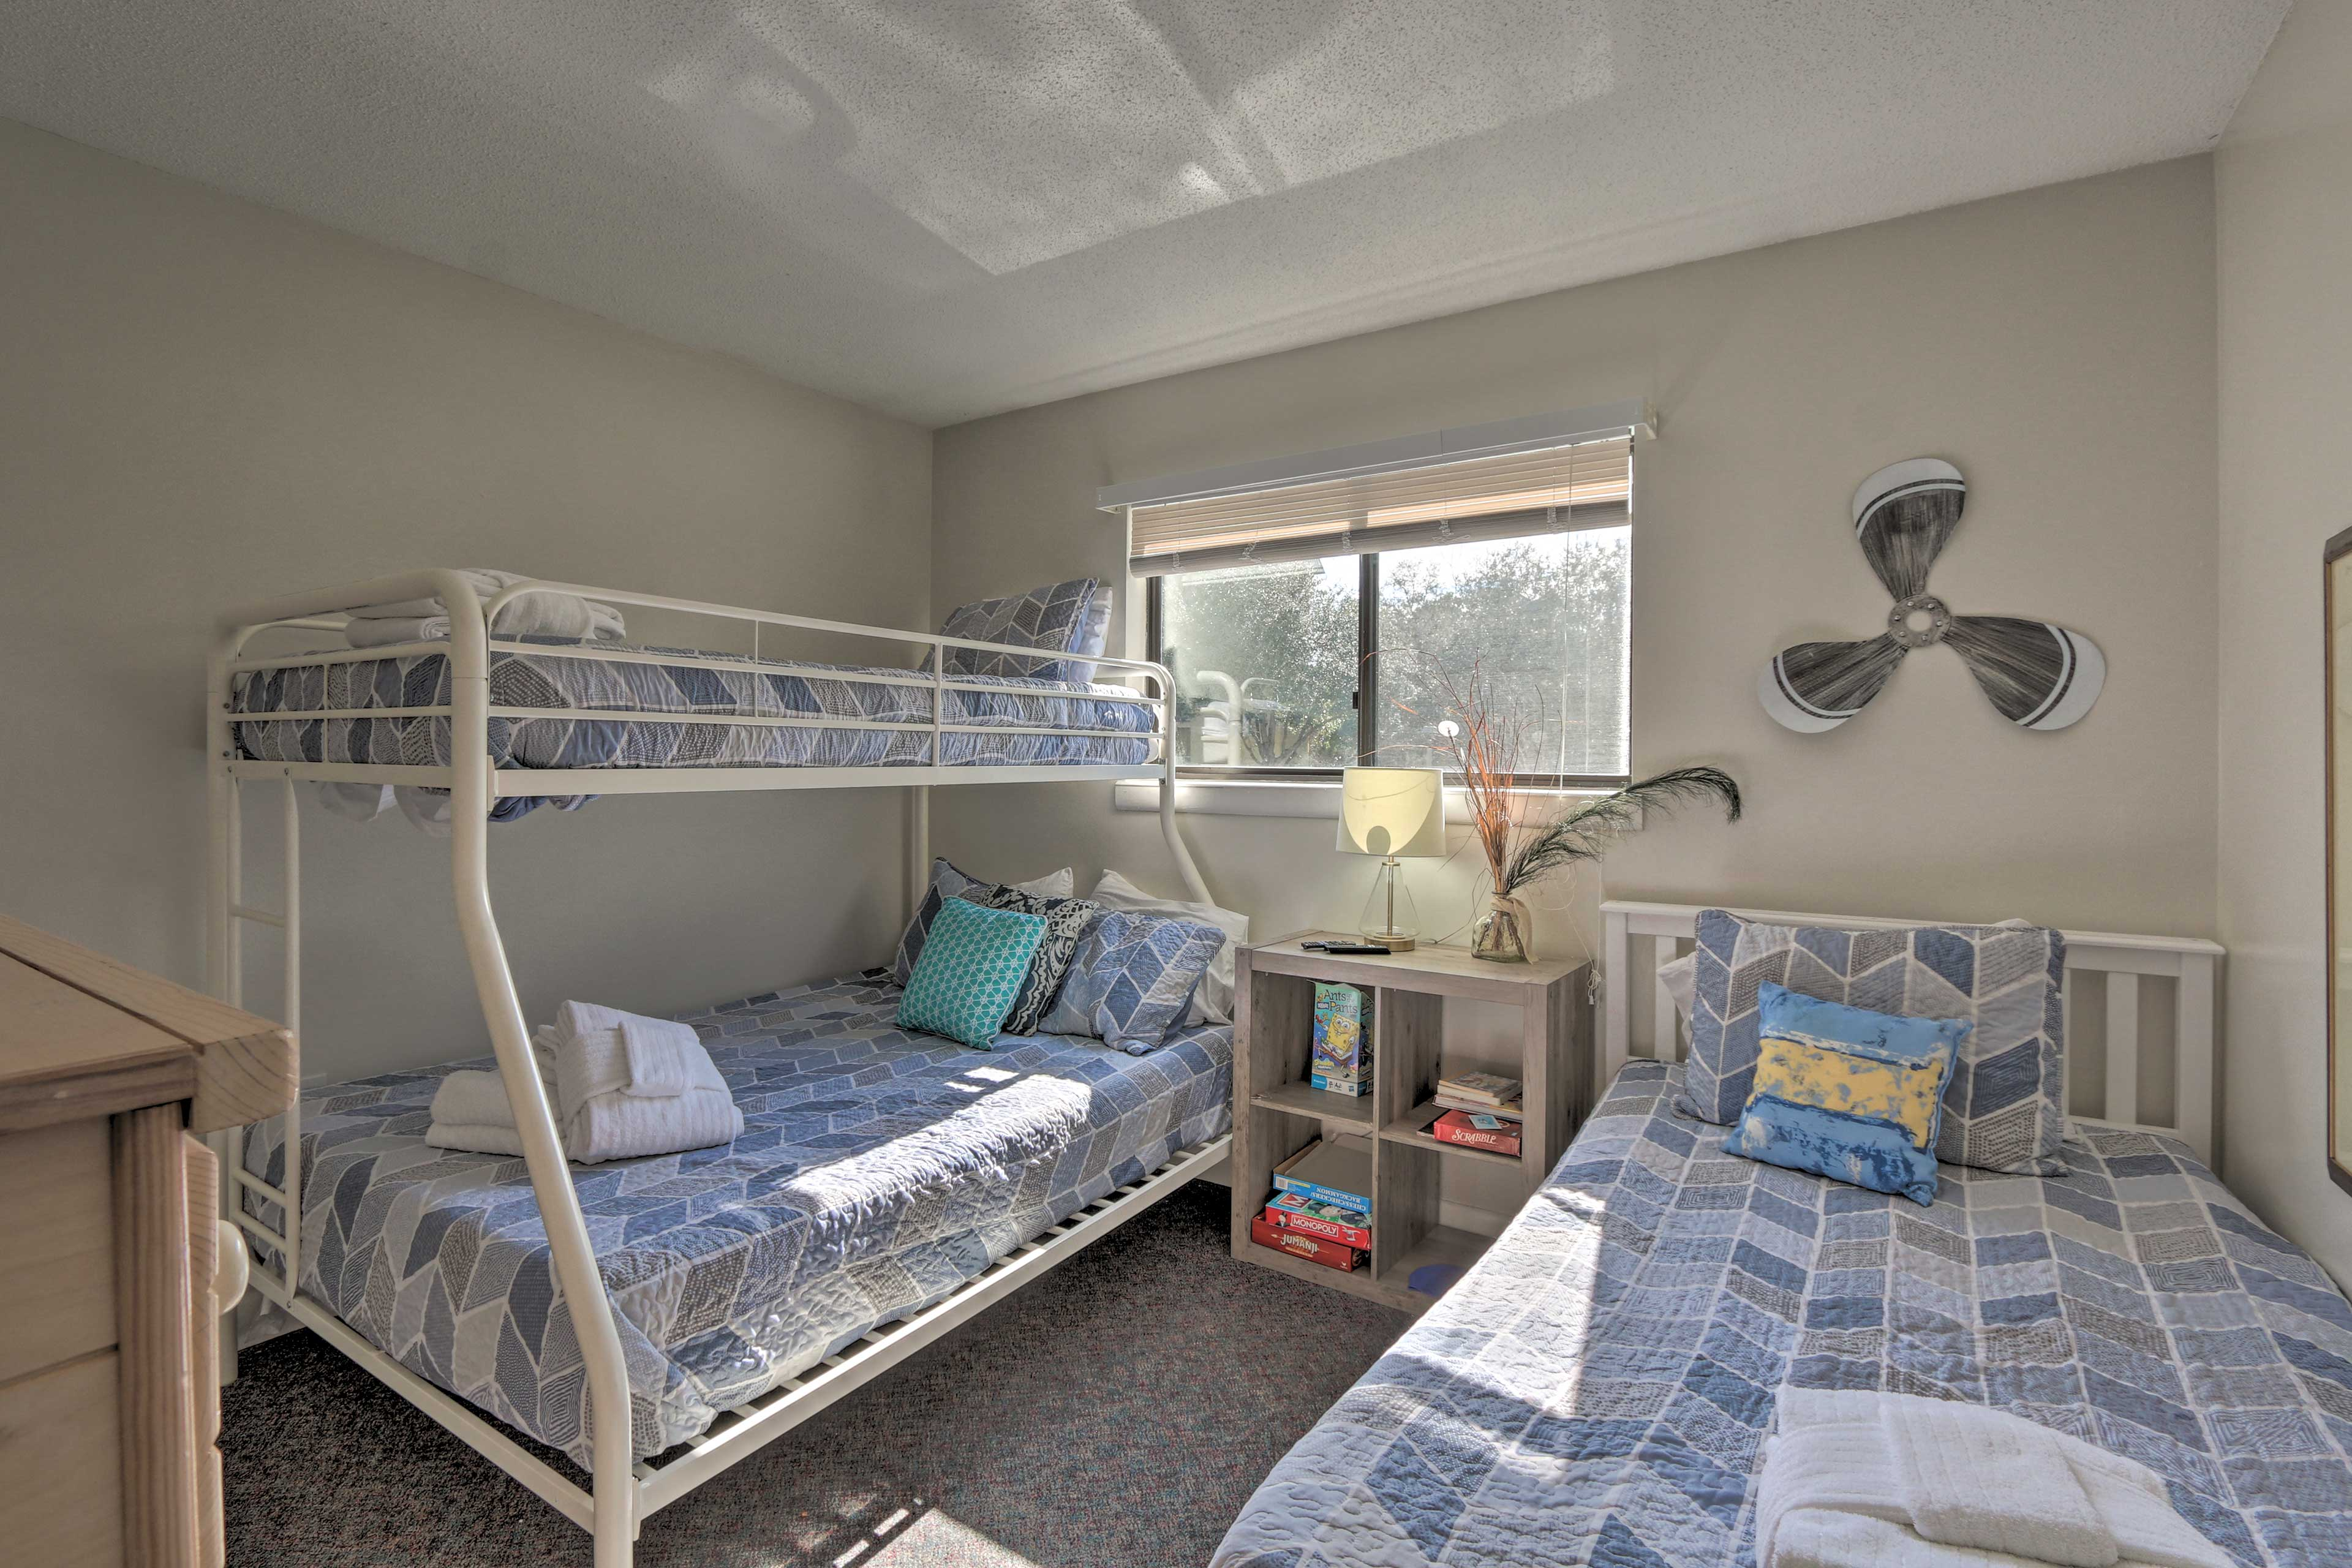 The kids can claim this room.